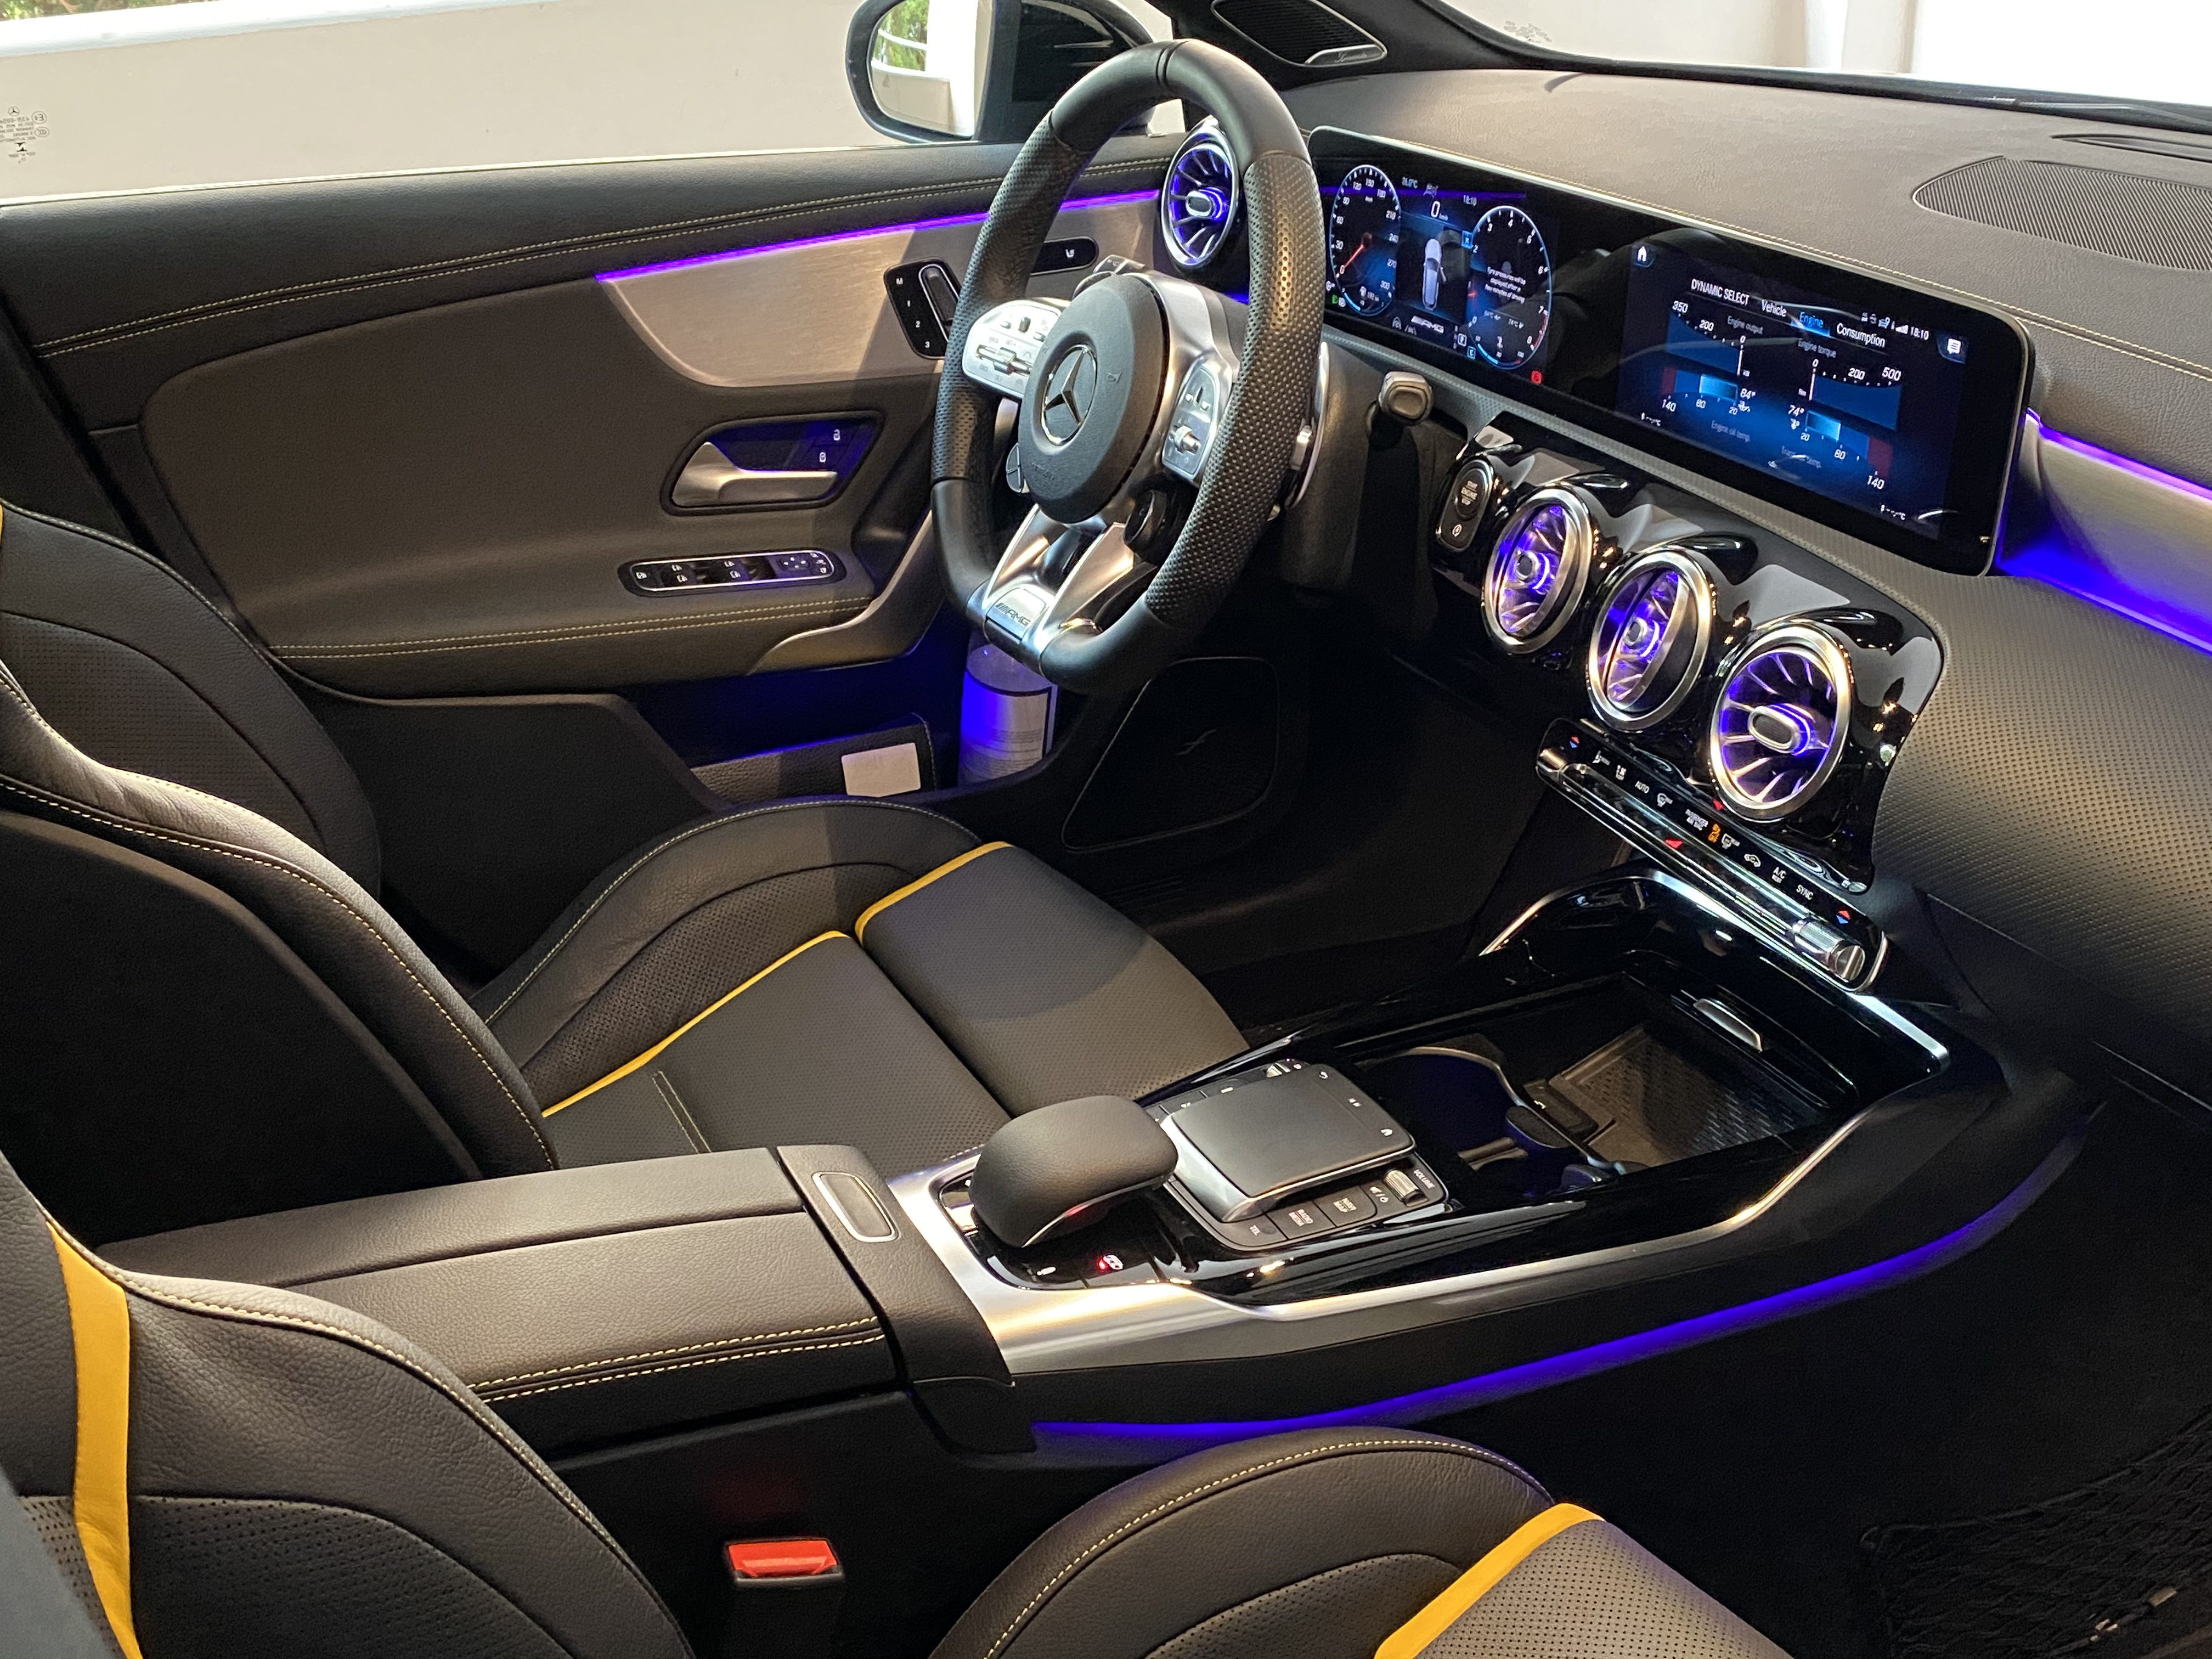 a45s_interior_front01.jpg